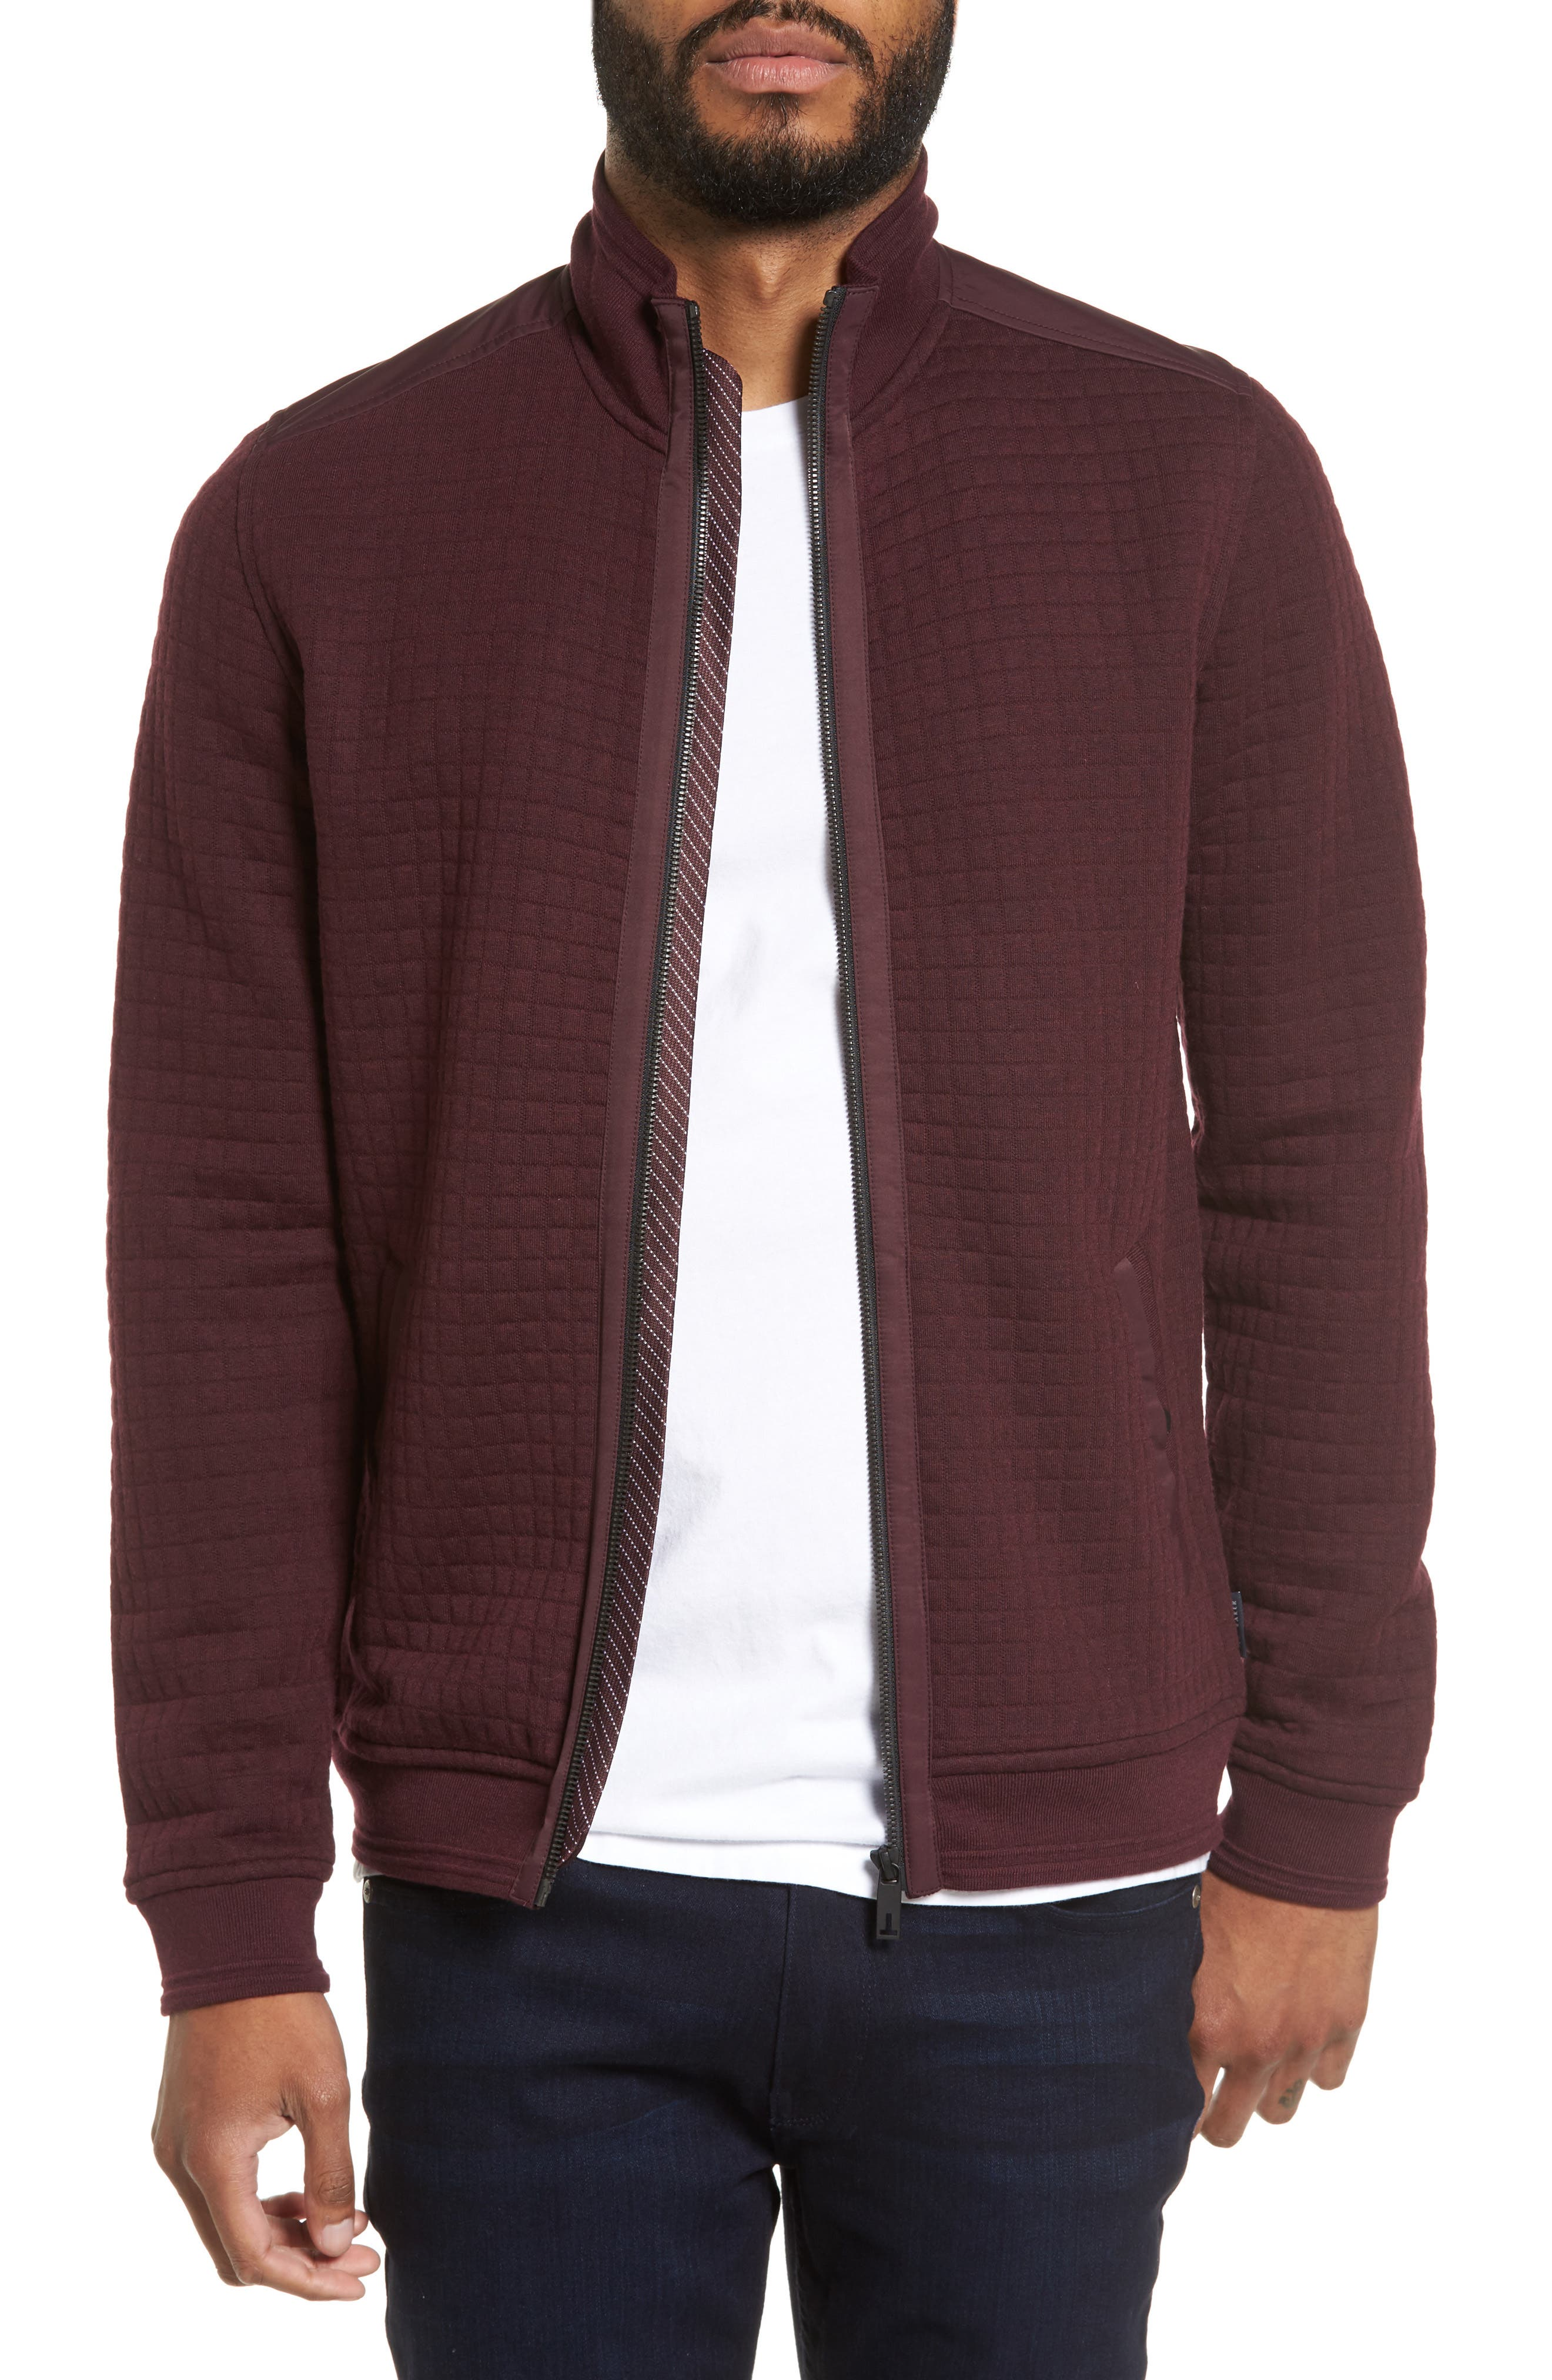 Ken Quilted Bomber Jacket,                             Main thumbnail 1, color,                             601